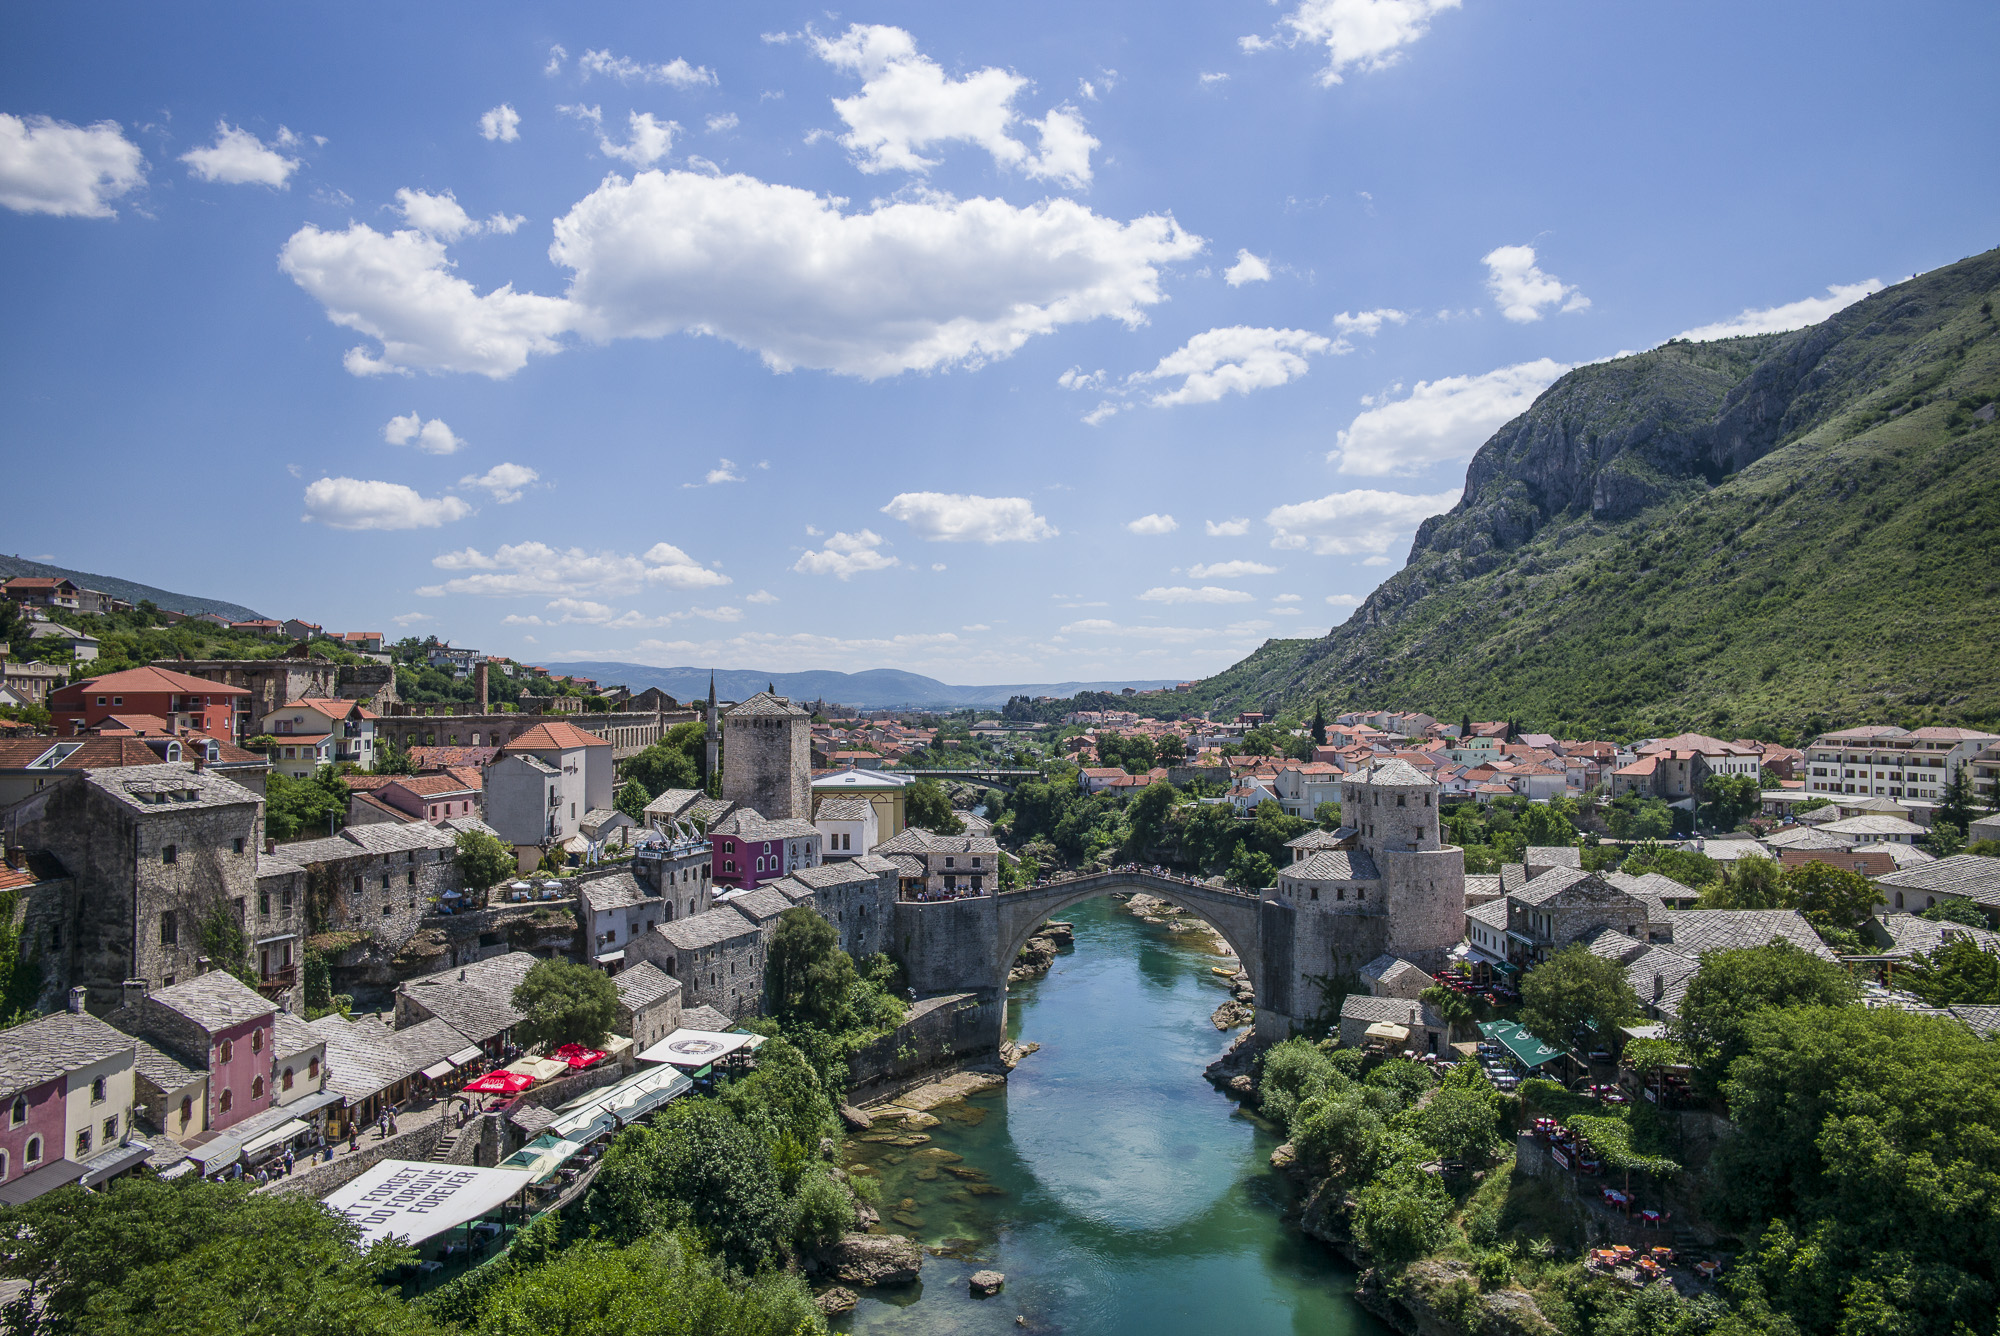 """The Mostar bridge (Stari Most) over the Neretva River. Note the sun shade, """" I DON""""T FORGET, I DO FORGIVE, FOREVER"""